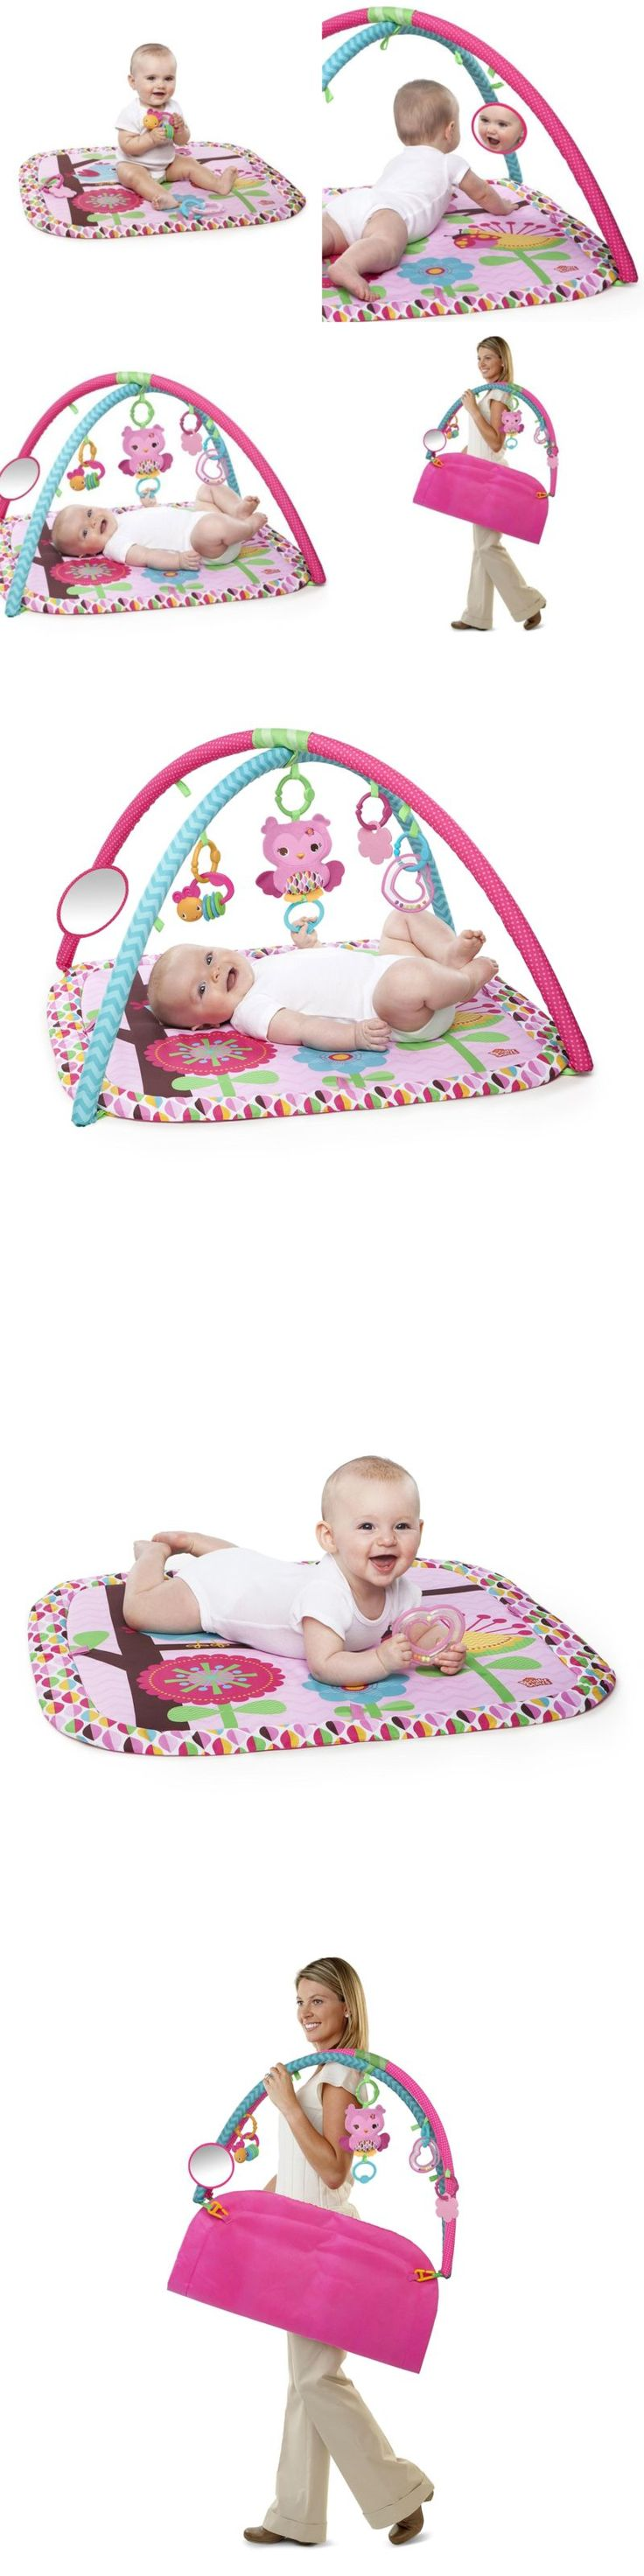 Baby Gyms and Play Mats 19069: Infant Play Mat Activity Gym For Baby Girl With Mobile Hanging Toys Game Center -> BUY IT NOW ONLY: $36.77 on eBay!